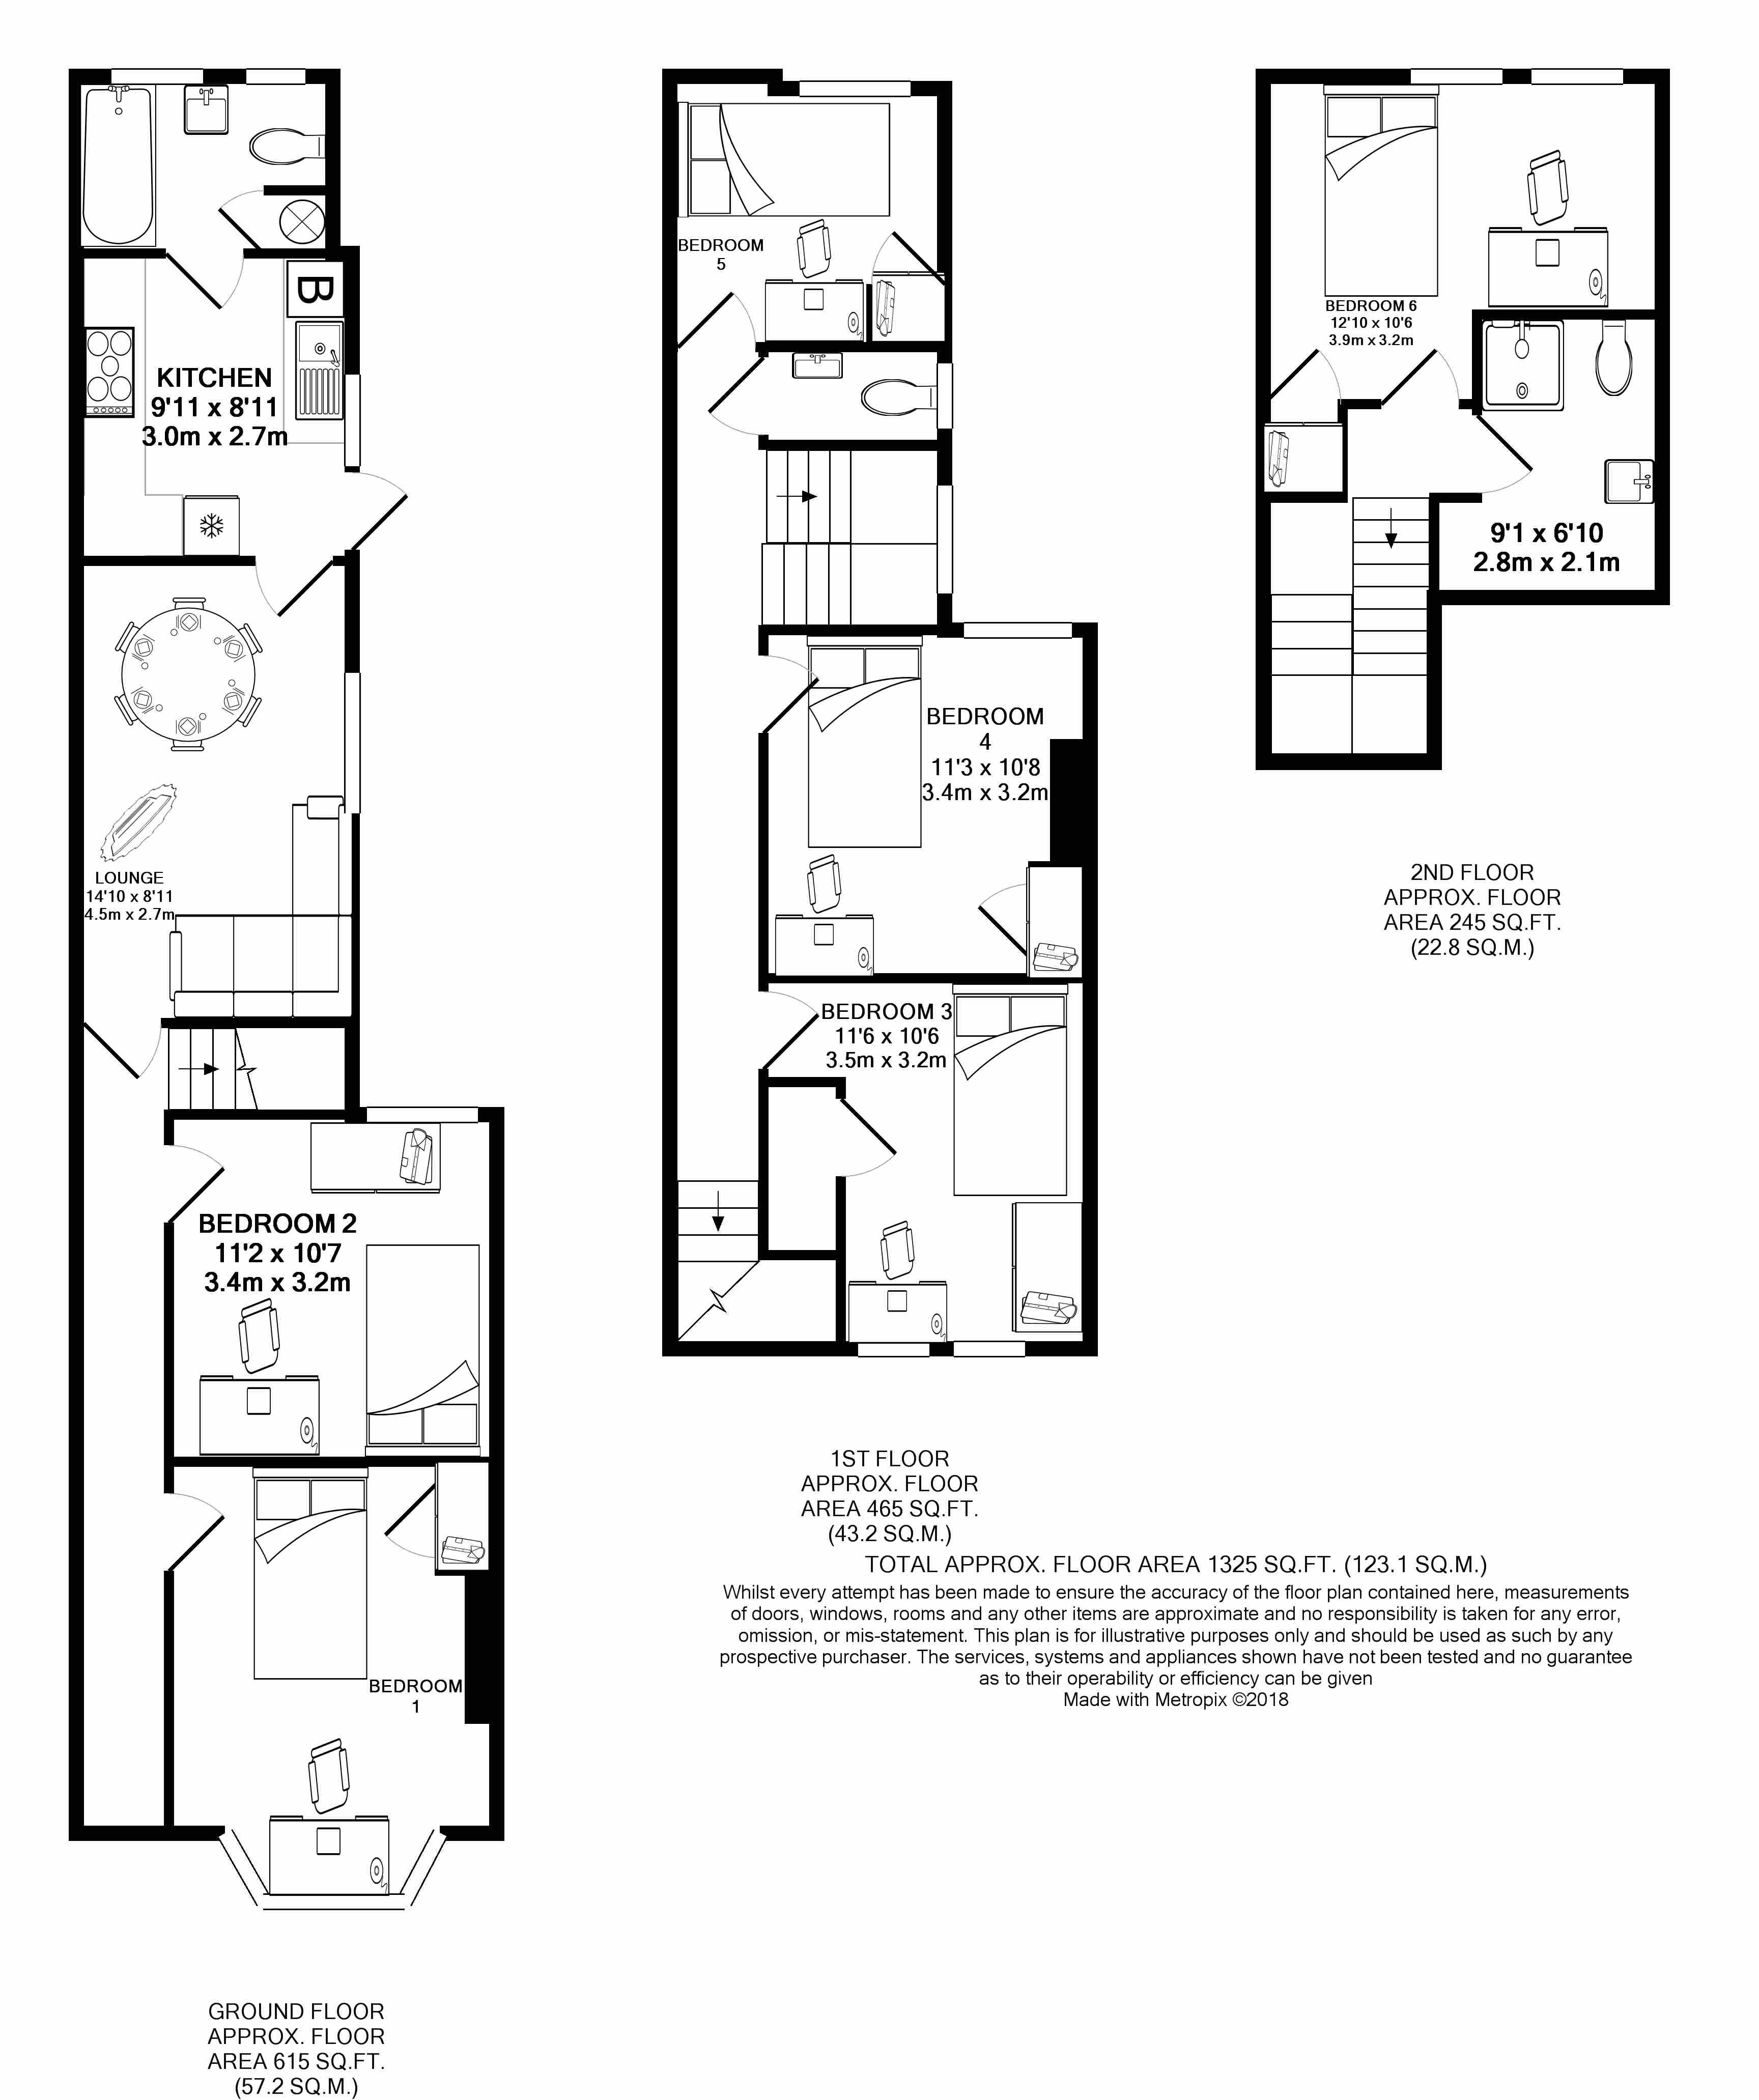 100 Manners Road - floorplans